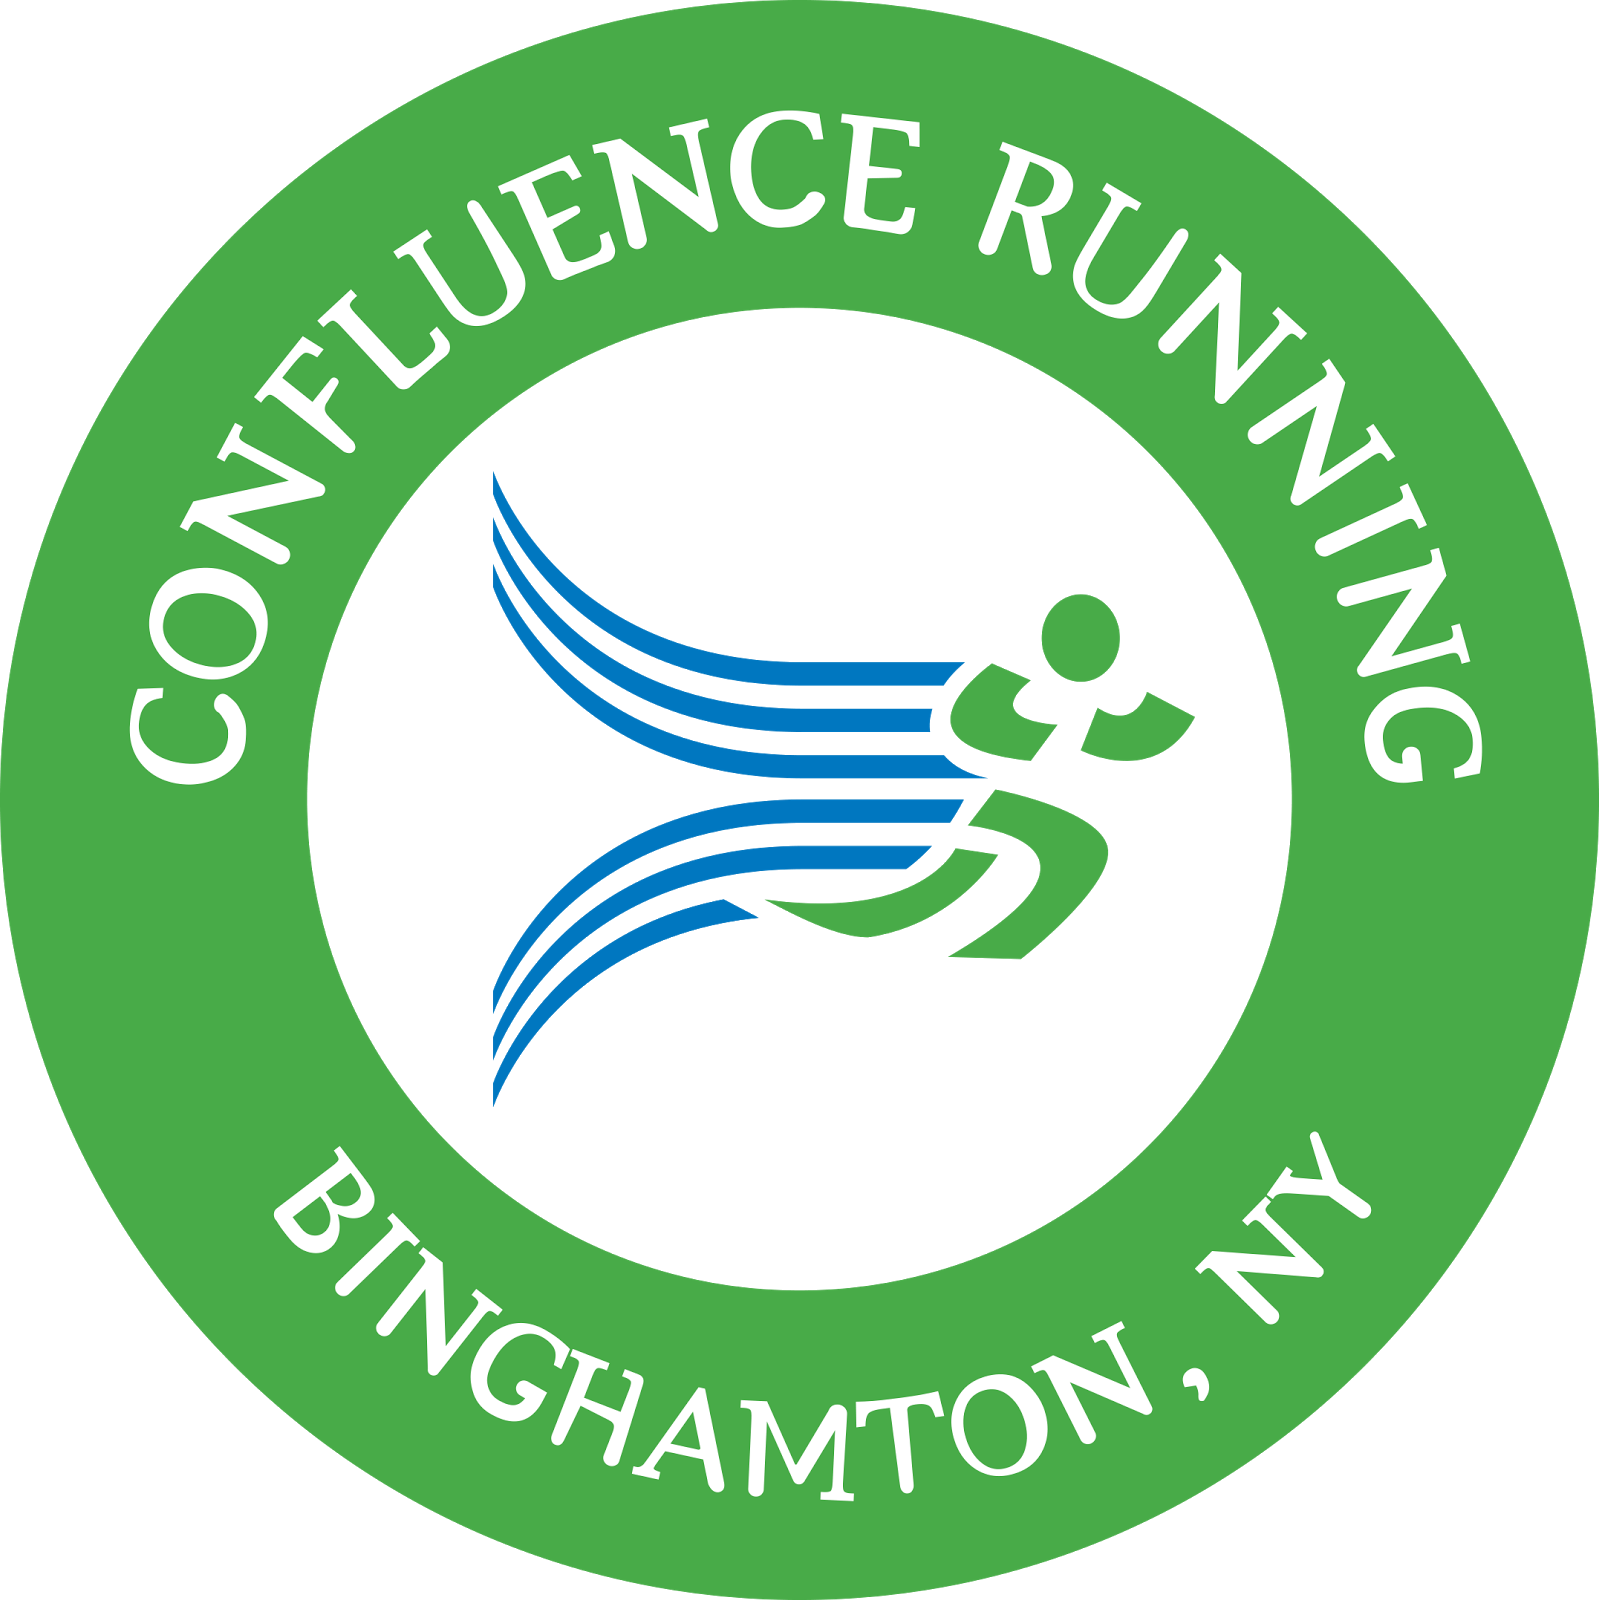 Binghamton Runs is presented to you by: